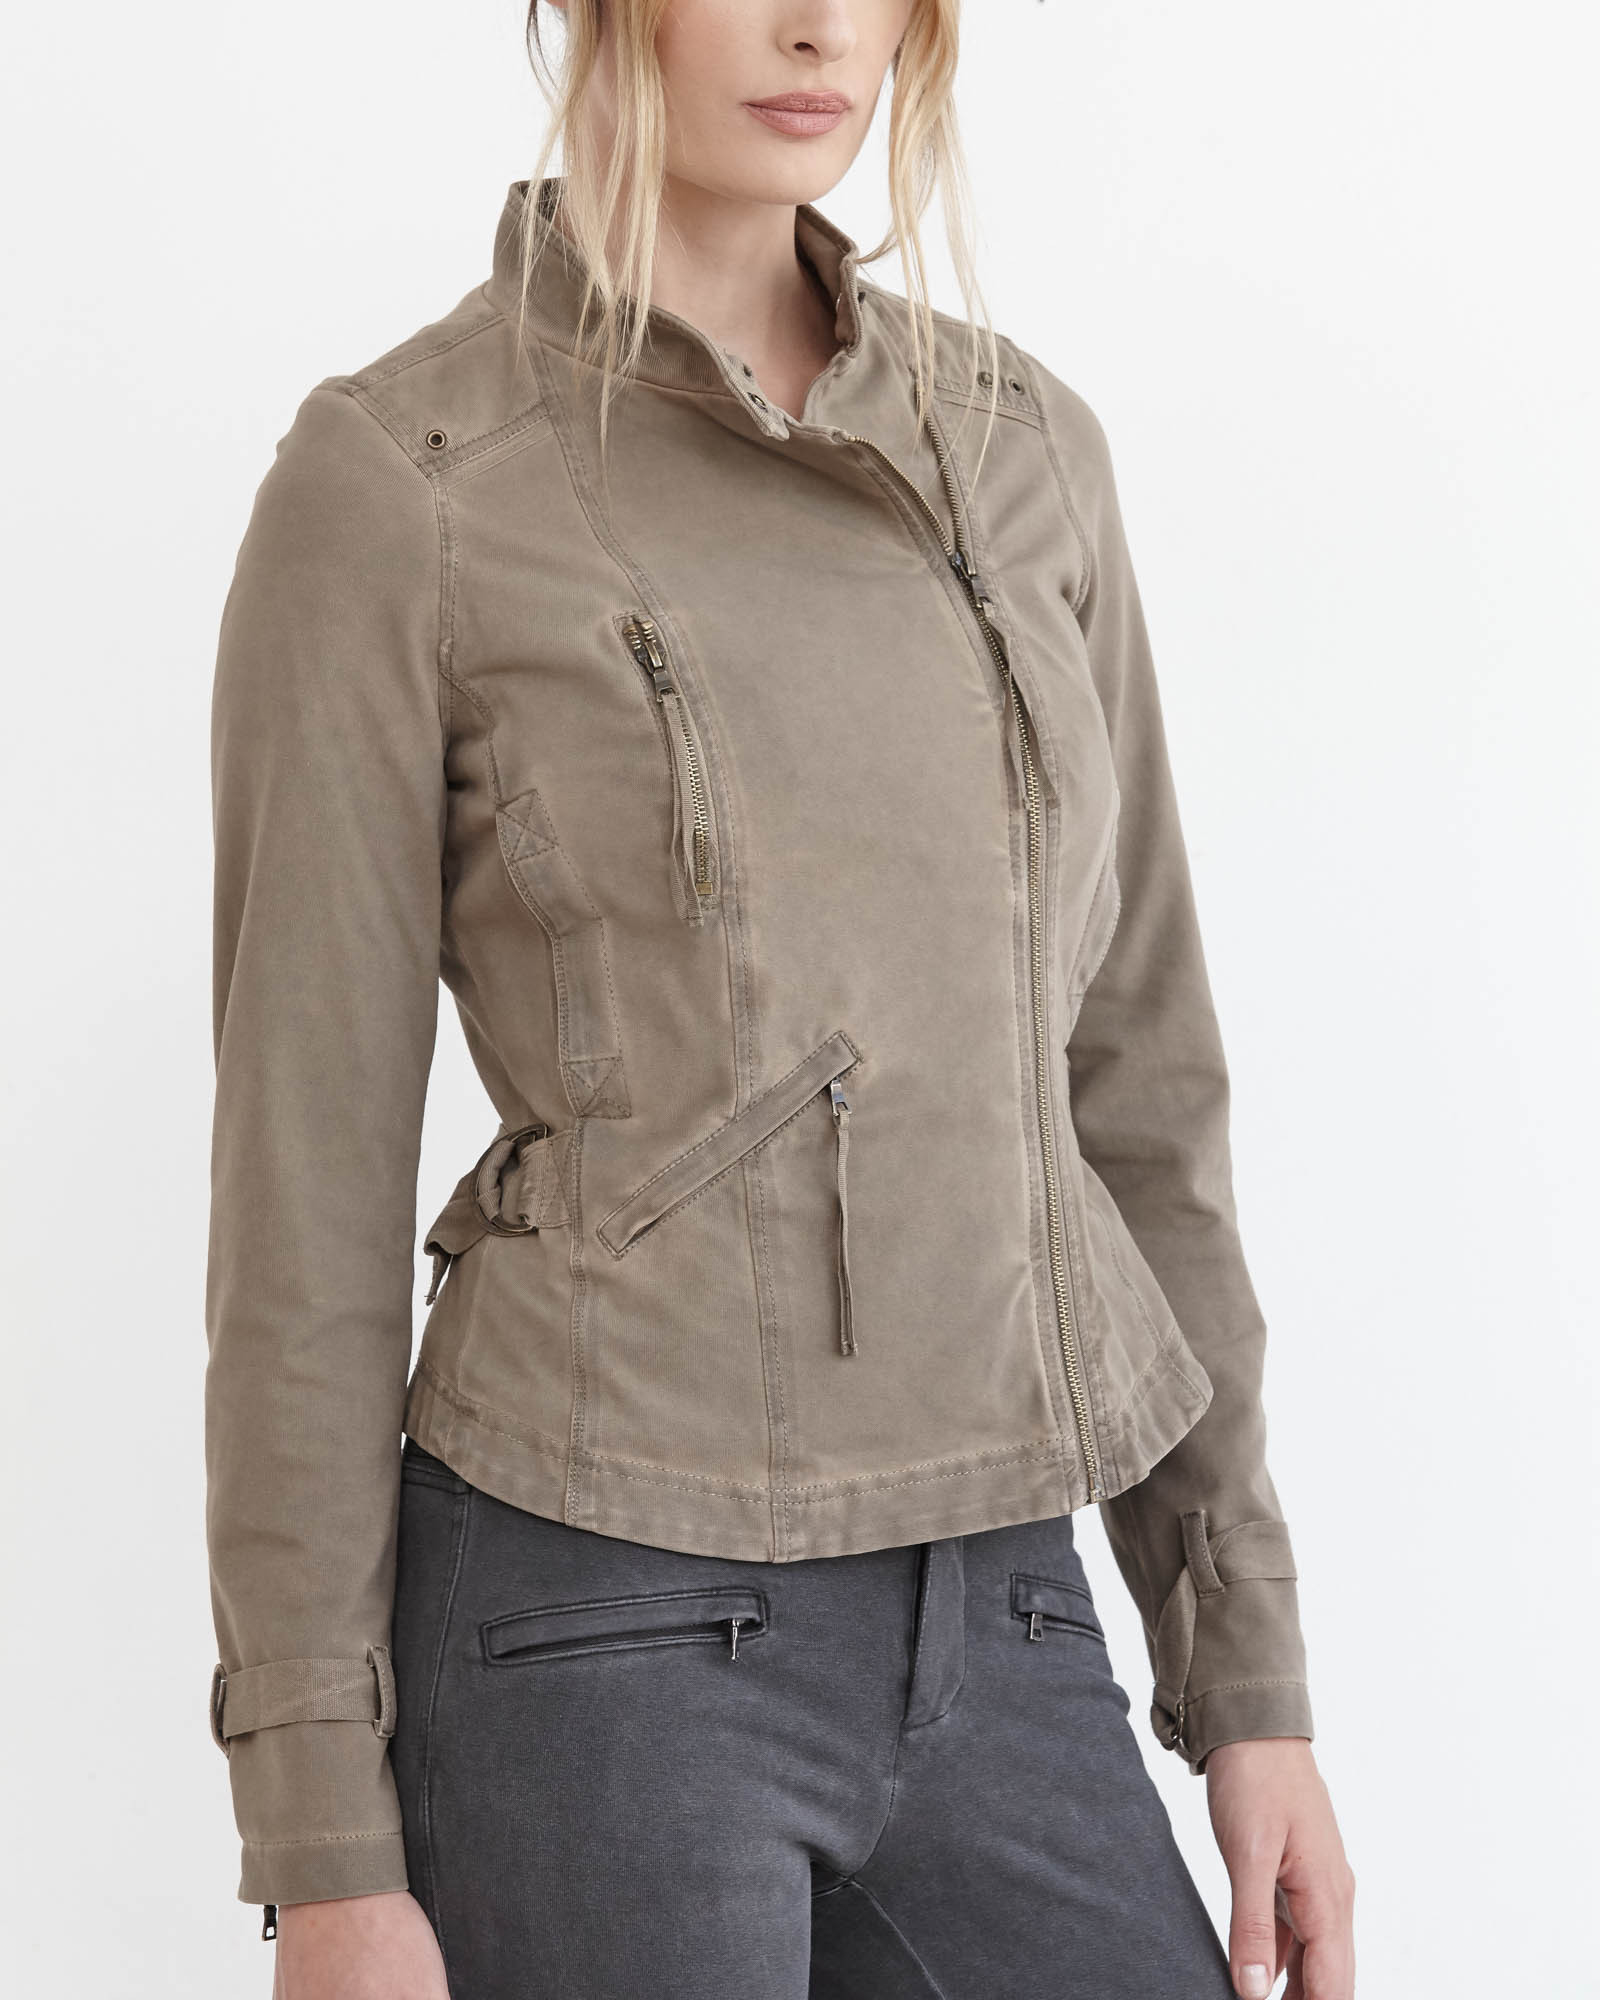 Marrakech Arely Knit Motorcycle Jacket in Gray Lyst